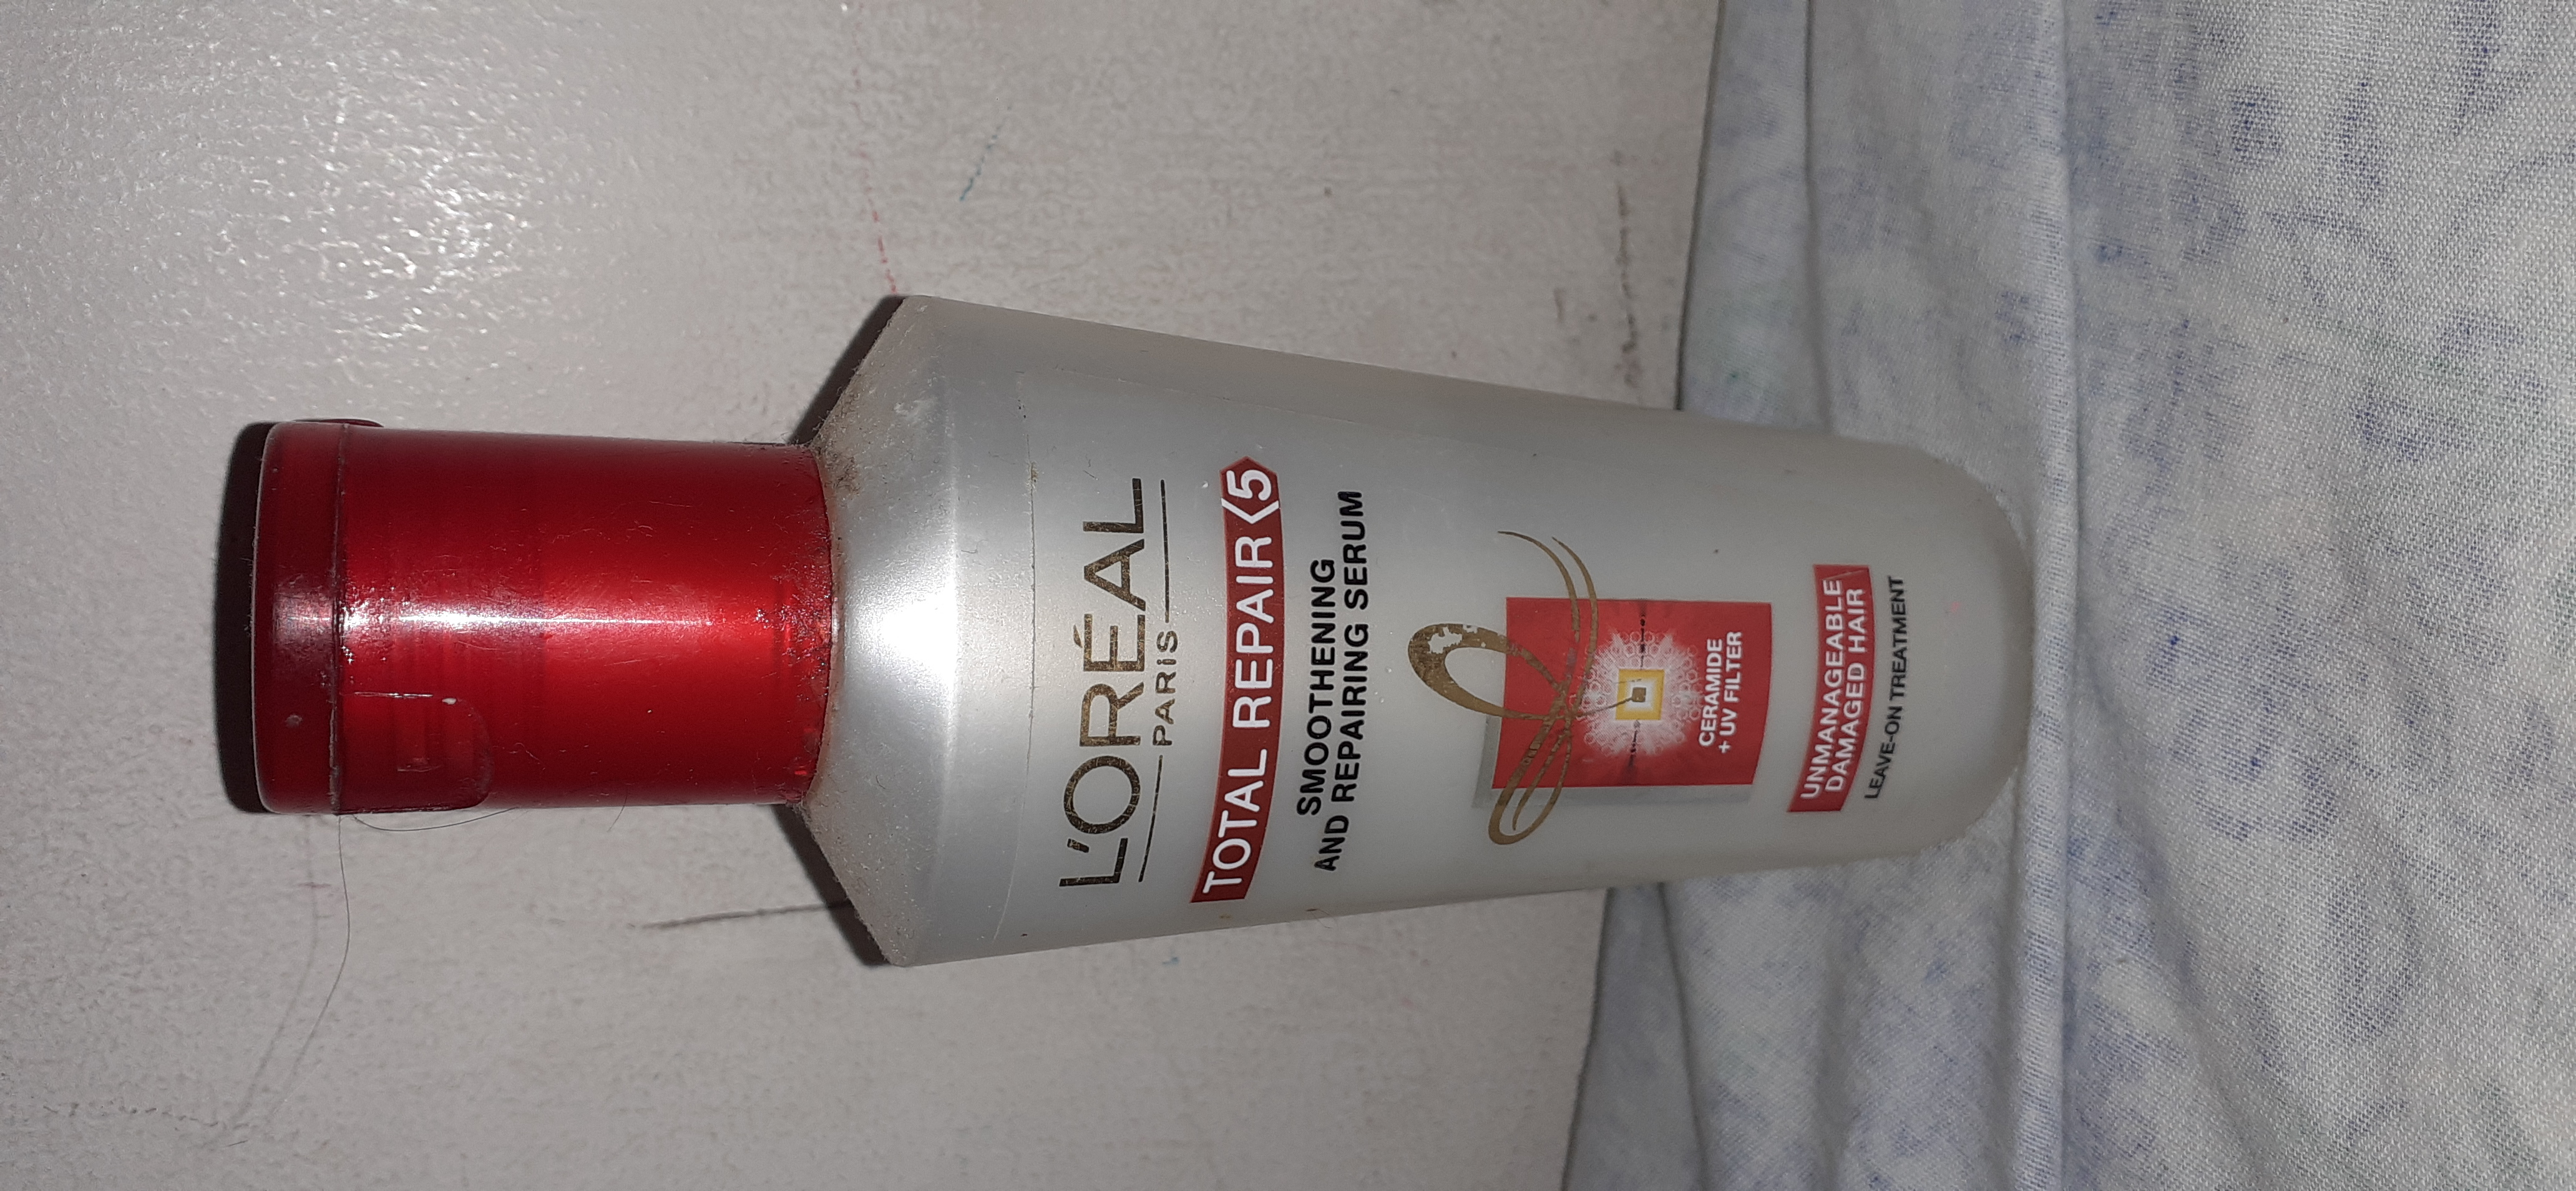 L'Oreal Paris Total Repair 5 Instant Smoothing and Nourishing Oil Serum-Beautiful product as a hair serum-By shreeshma_d